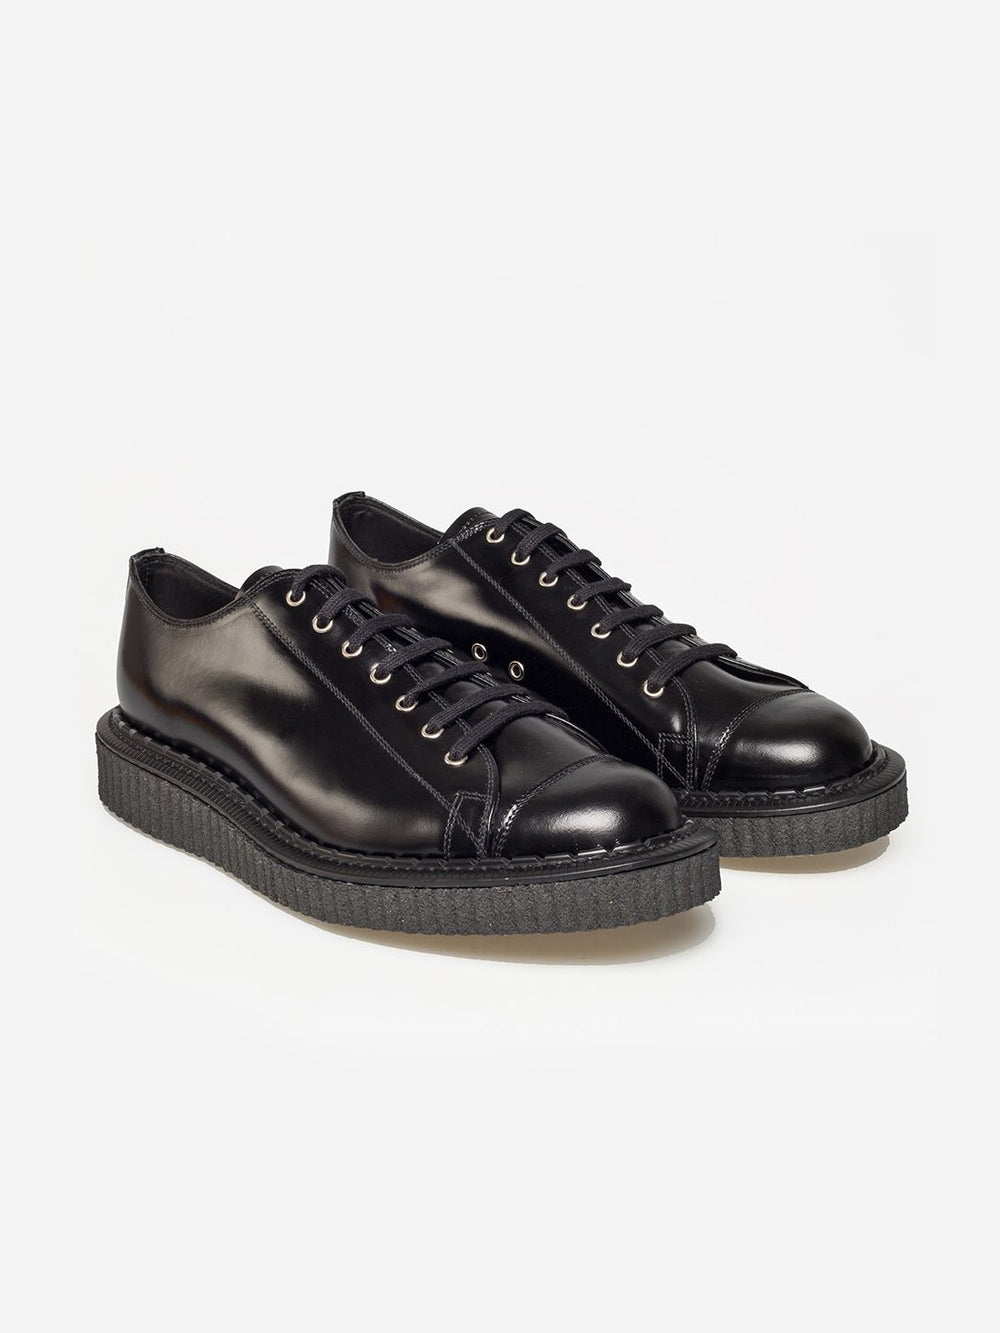 GEORGE COX BLACK MONKEY SHOE available at ONS Clothing